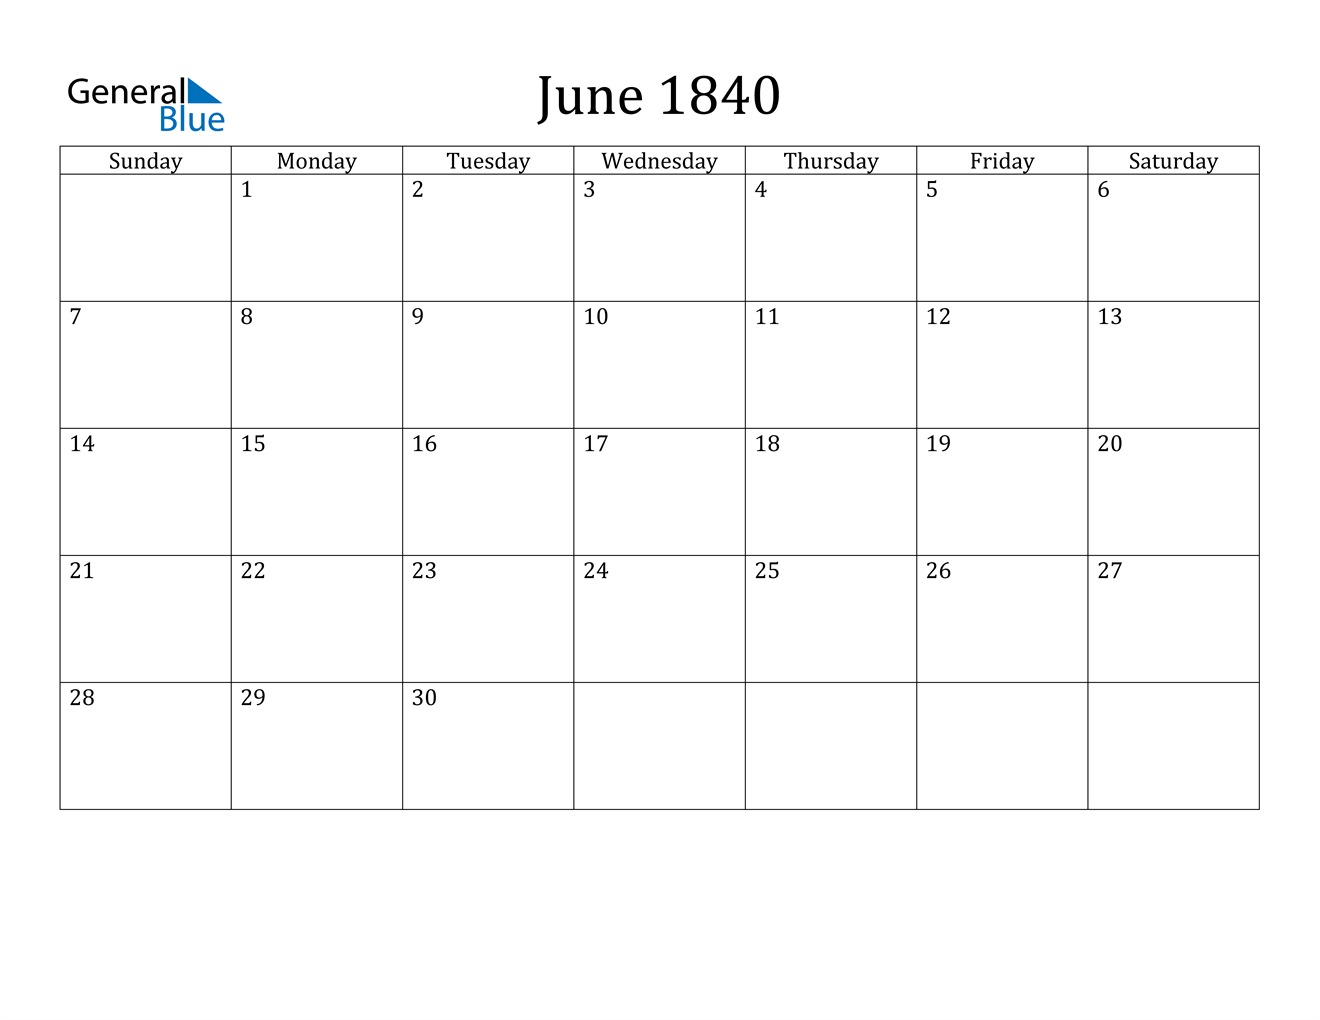 Image of June 1840 Calendar